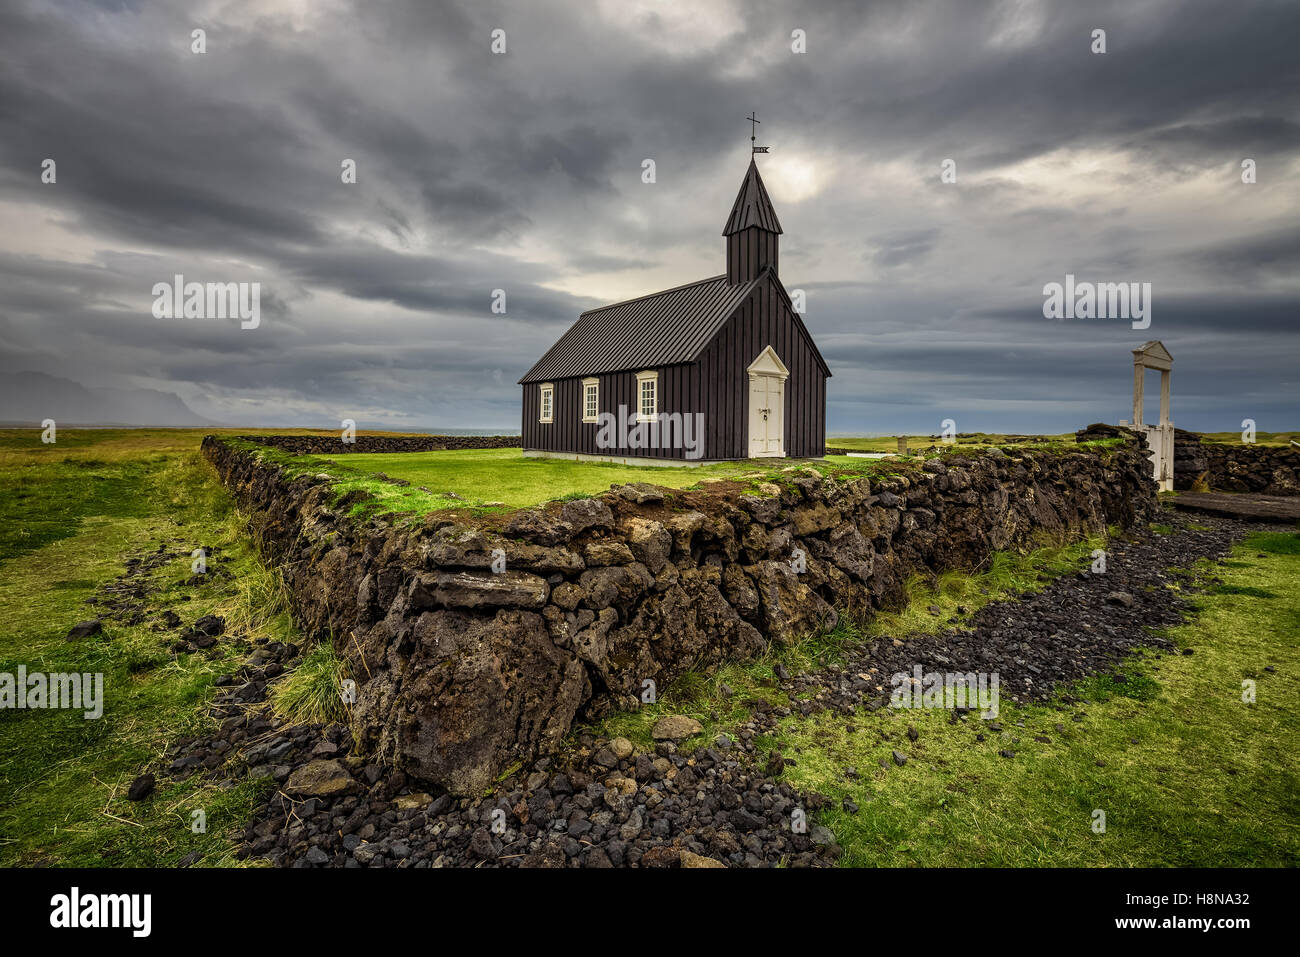 Black wooden church of Budir in Iceland. Hdr processed. - Stock Image